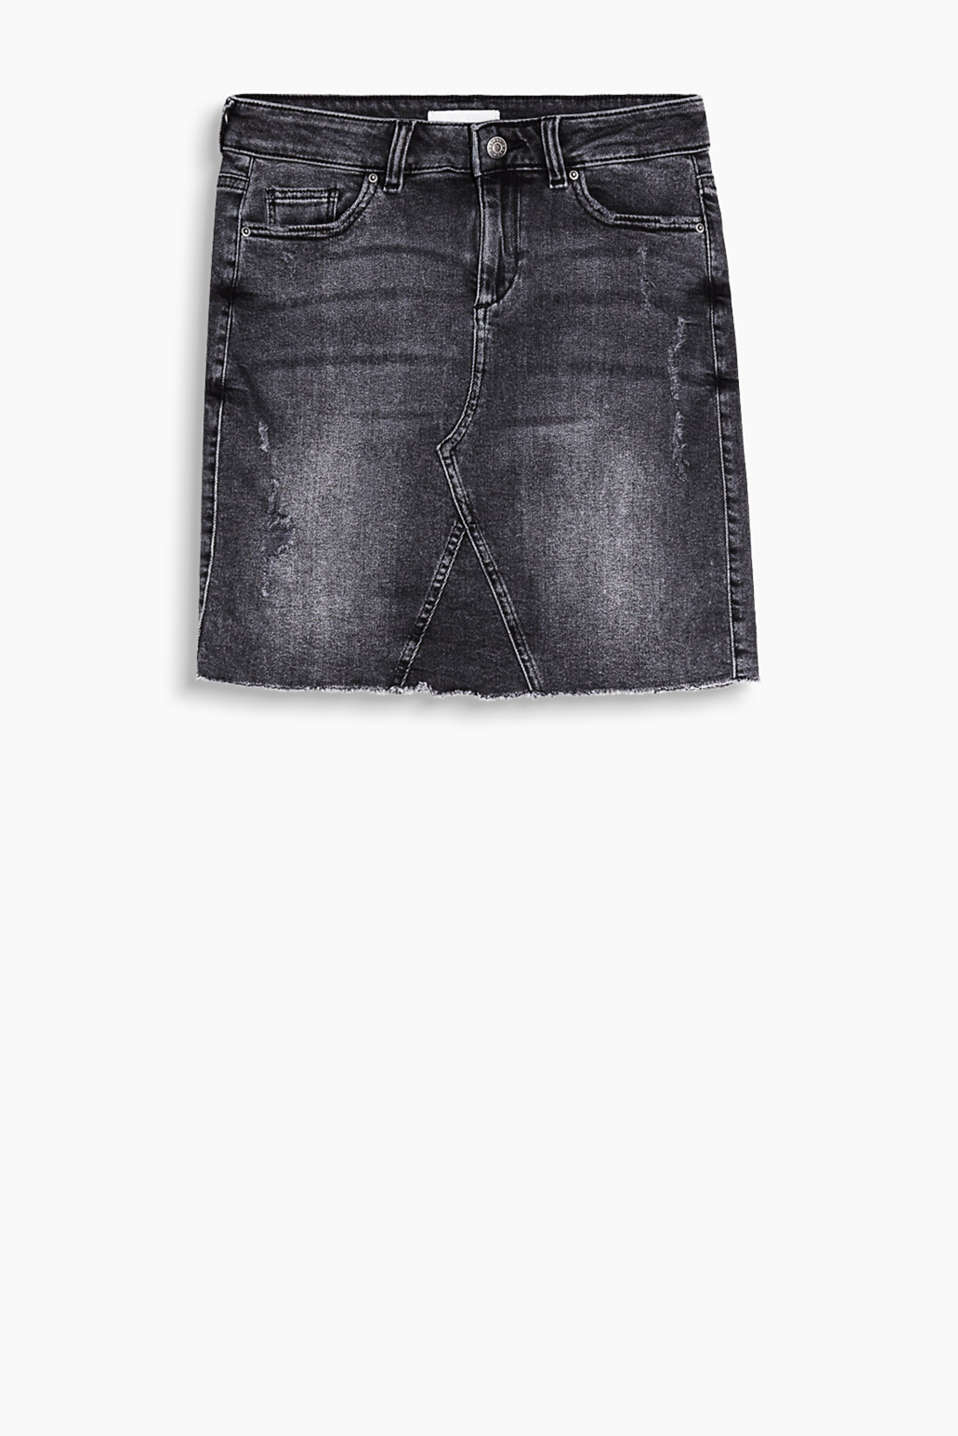 Skirt in stretch denim with a frayed hem in a cool vintage style